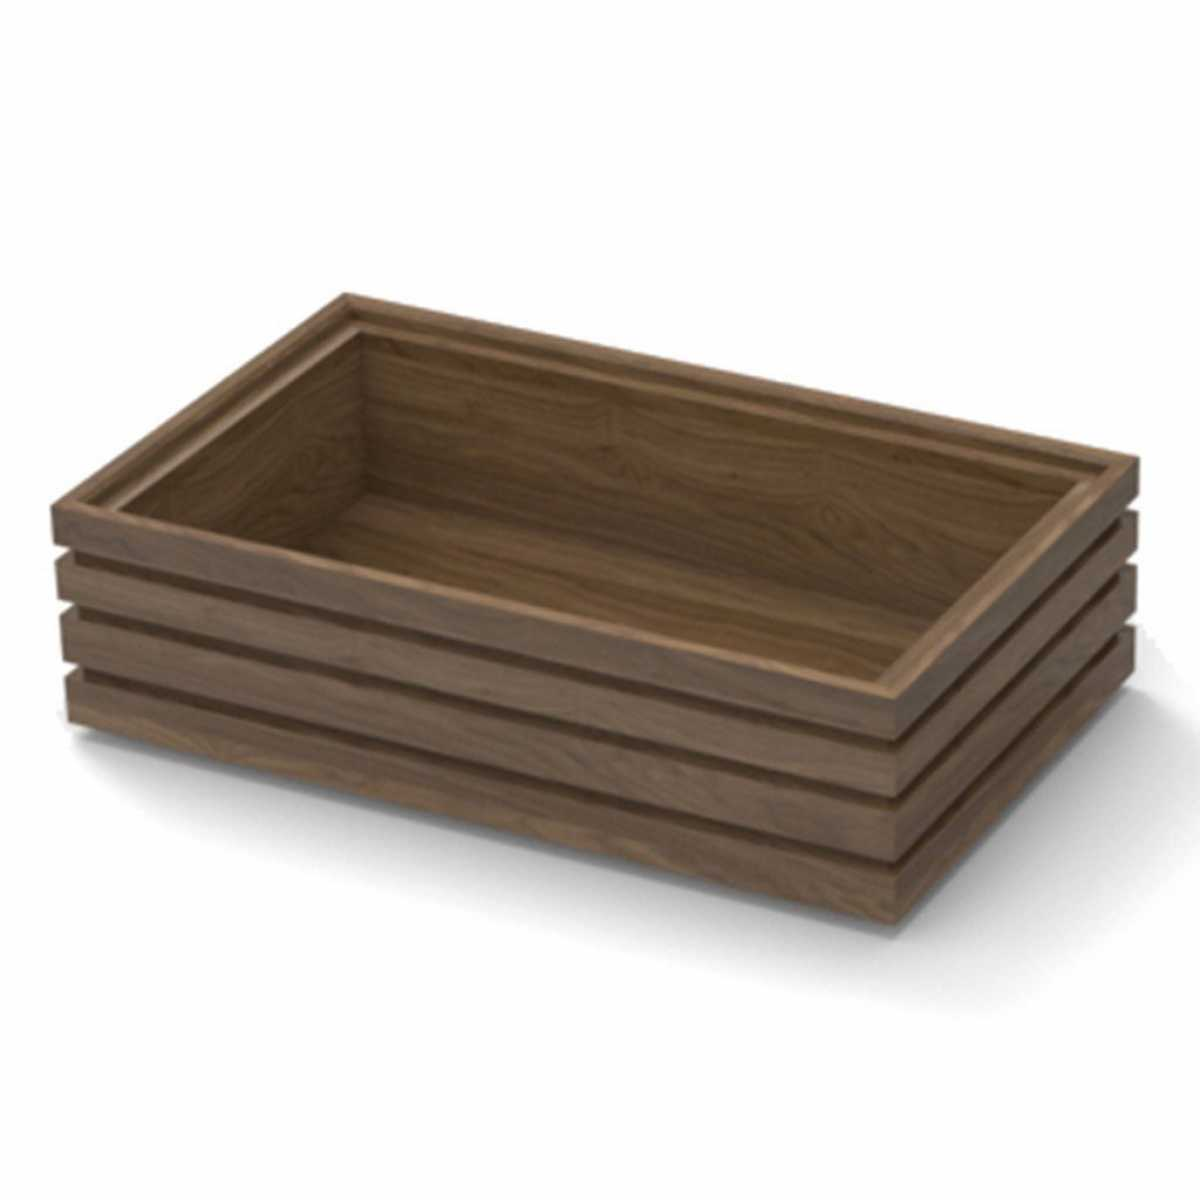 CRASTER Flow Walnut Tray 1.4 - Uzun